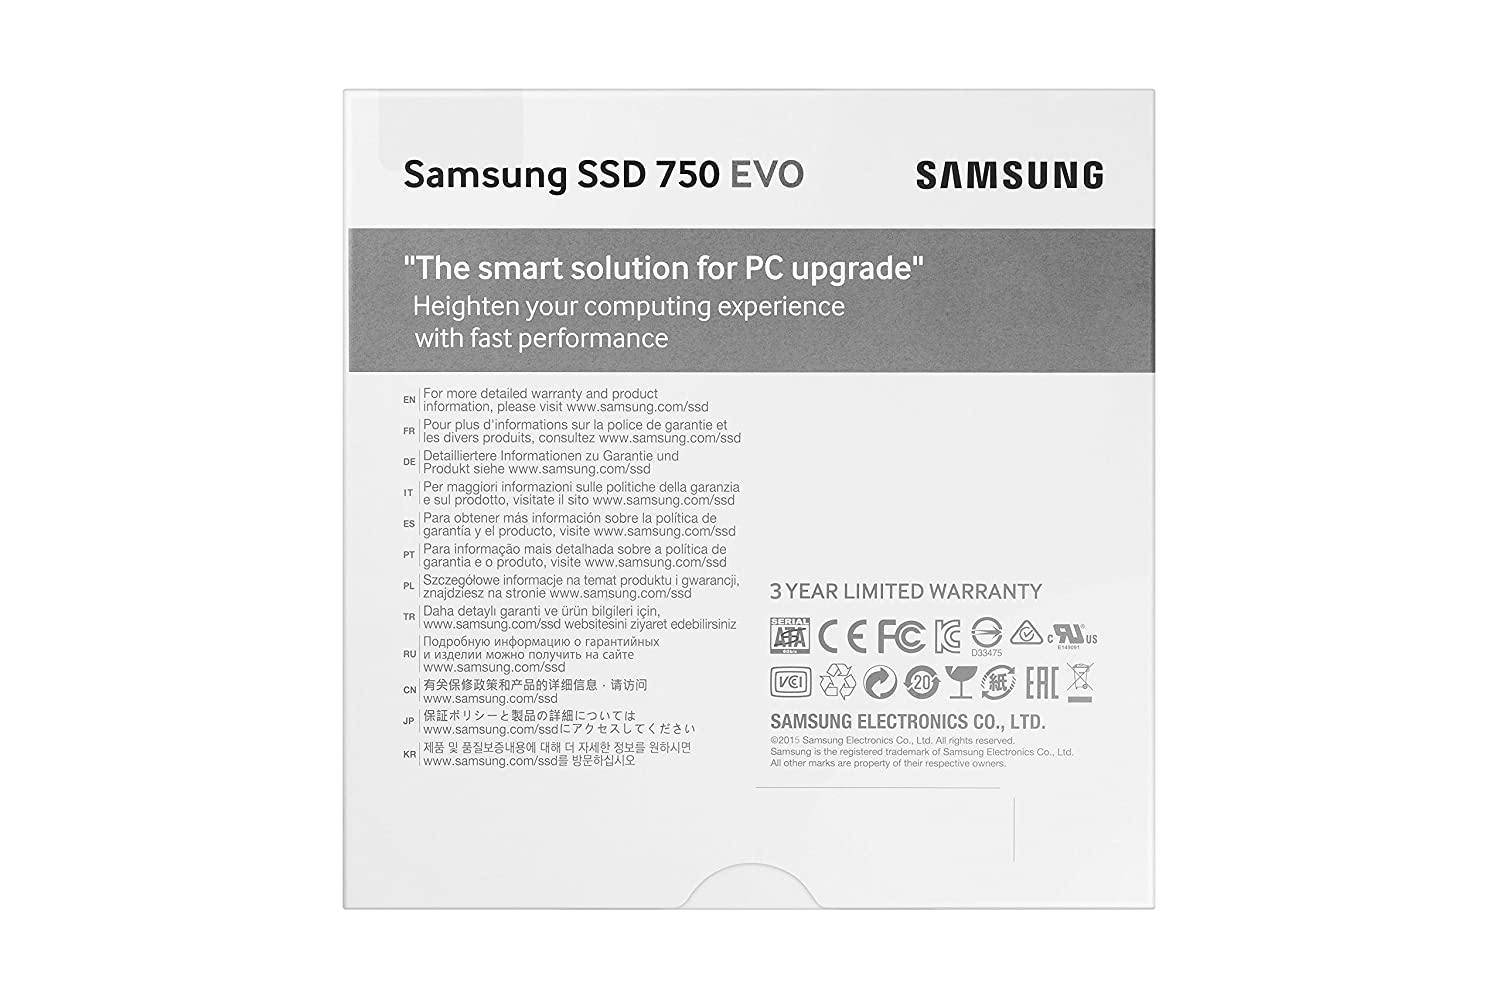 Buy Samsung 750 Evo 500gb 25 Inch Sata Iii Internal Ssd 850 25ampquot 250gb Mz 75e250b Am 750500bw Online At Low Prices In India Reviews Ratings